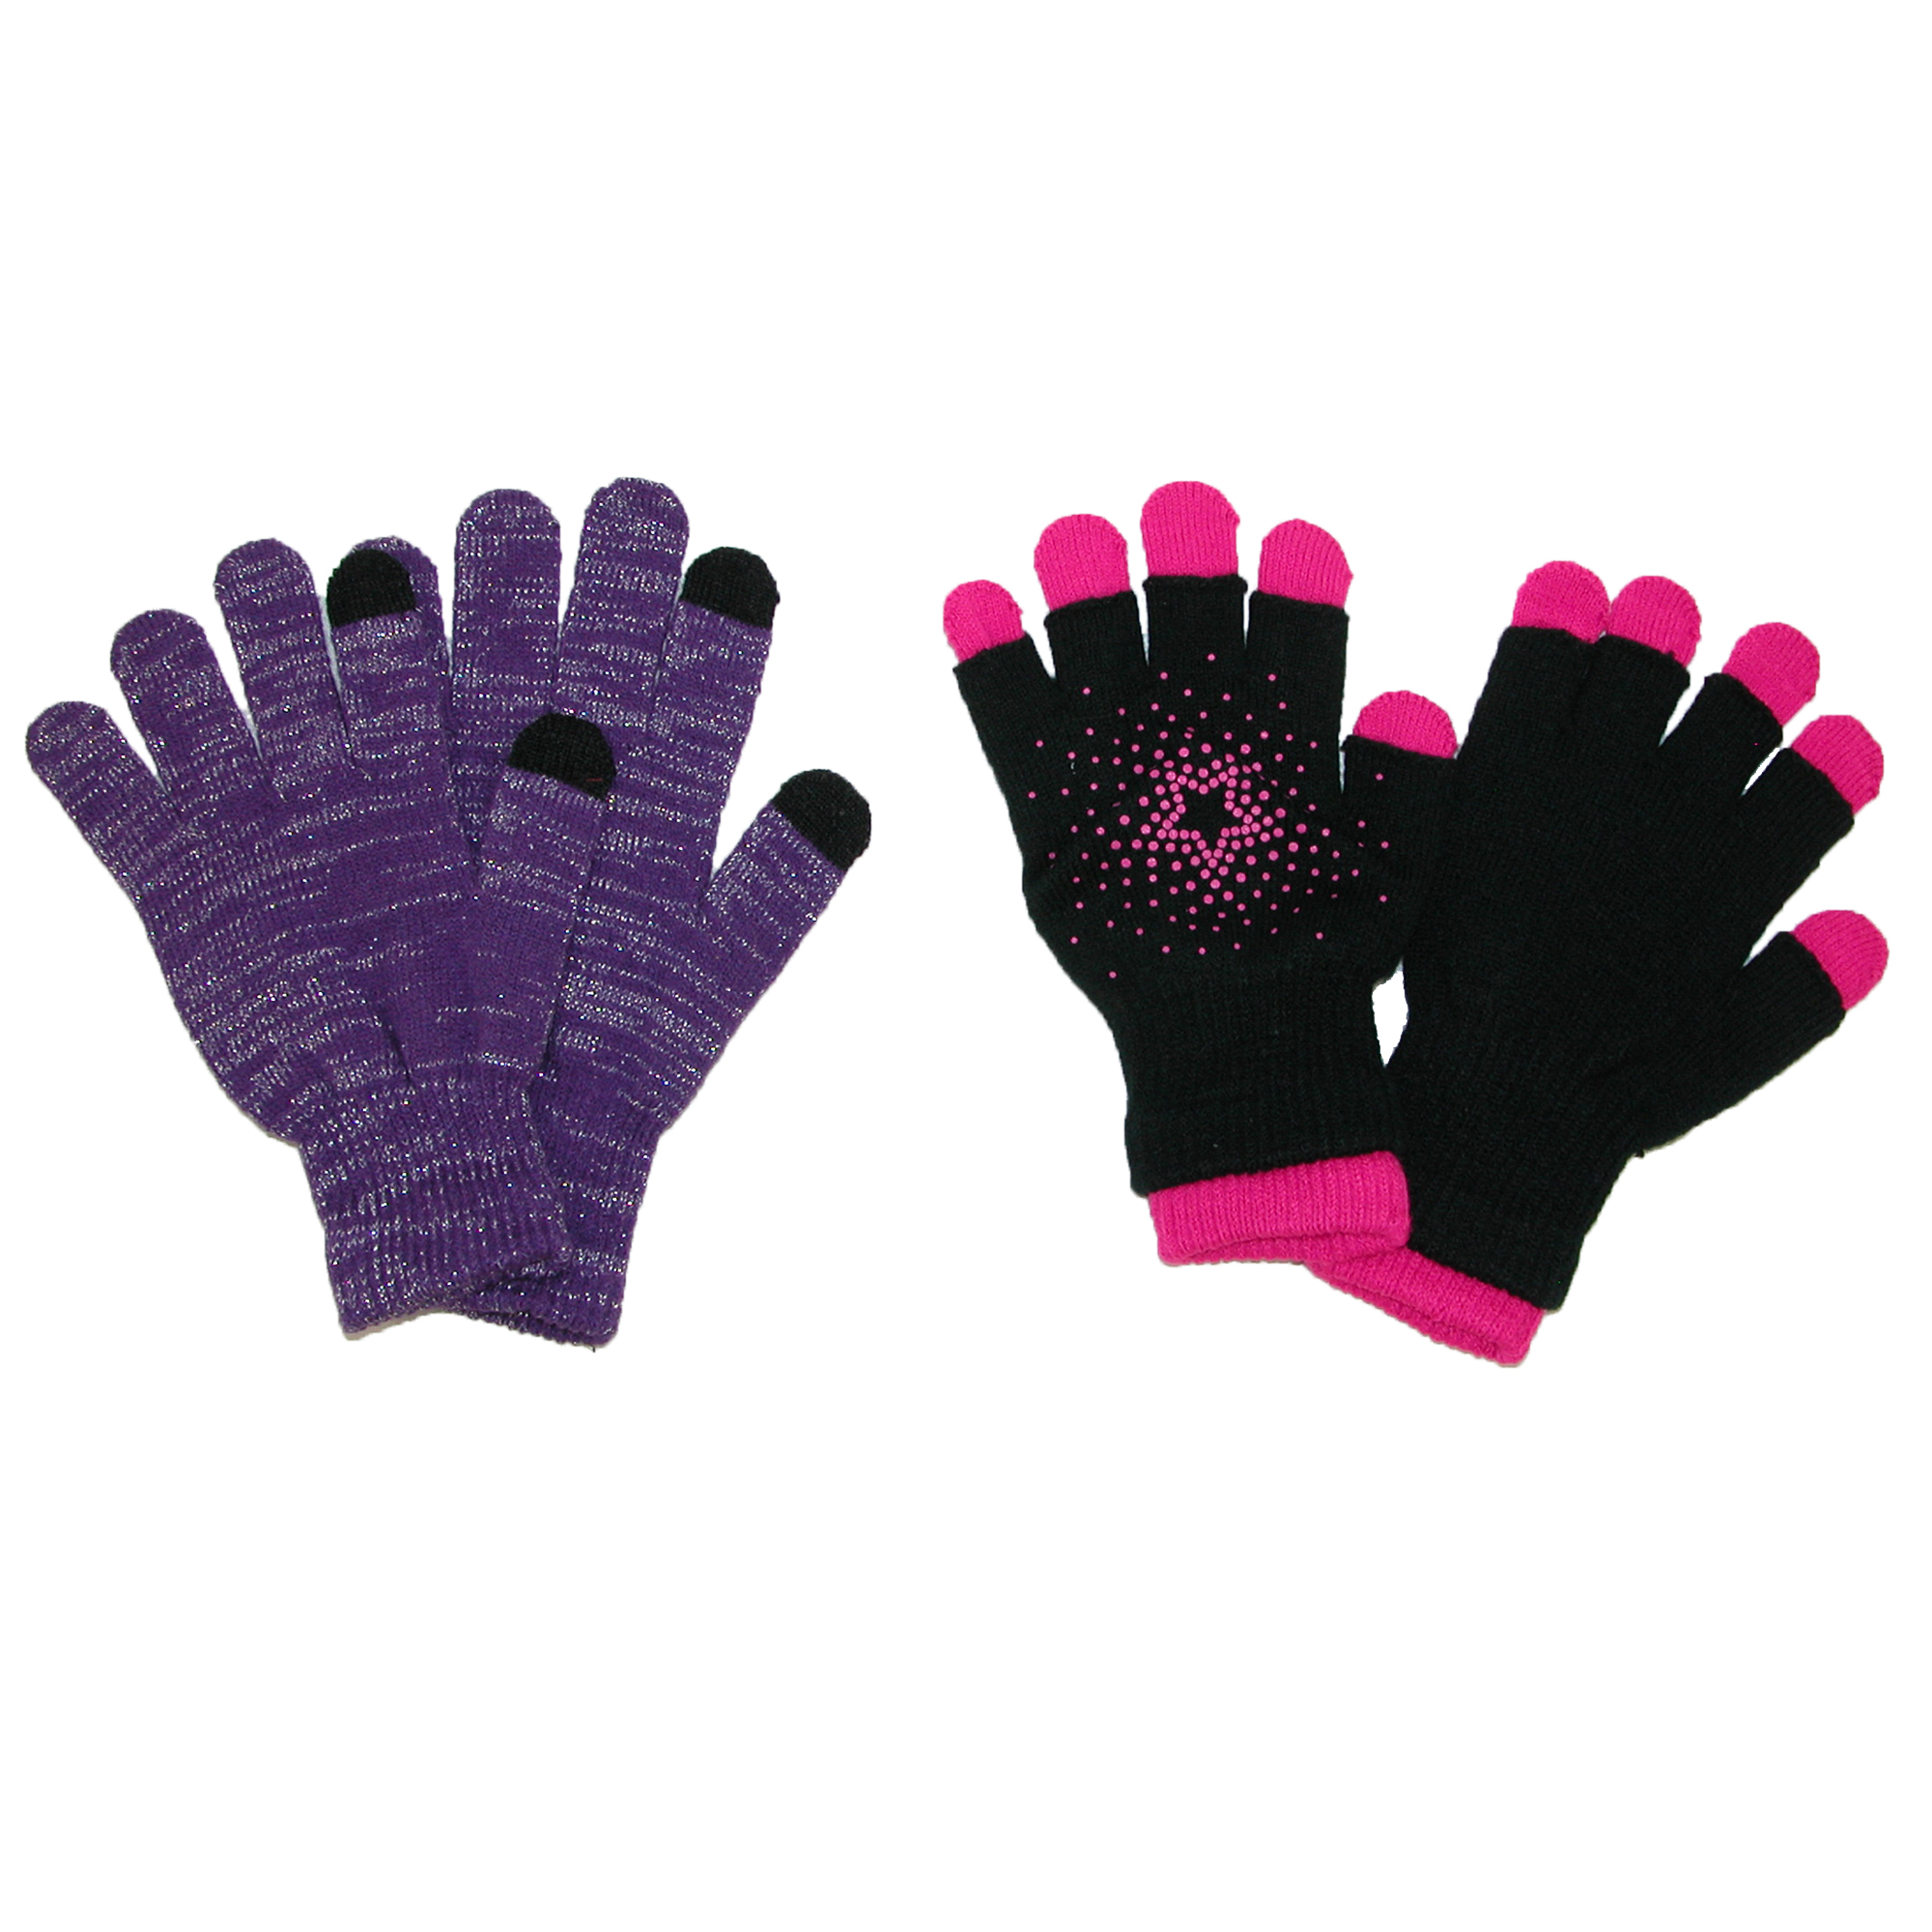 Aquarius  Girls' Touch Screen Gloves and 2 in 1 Fingerless Gloves